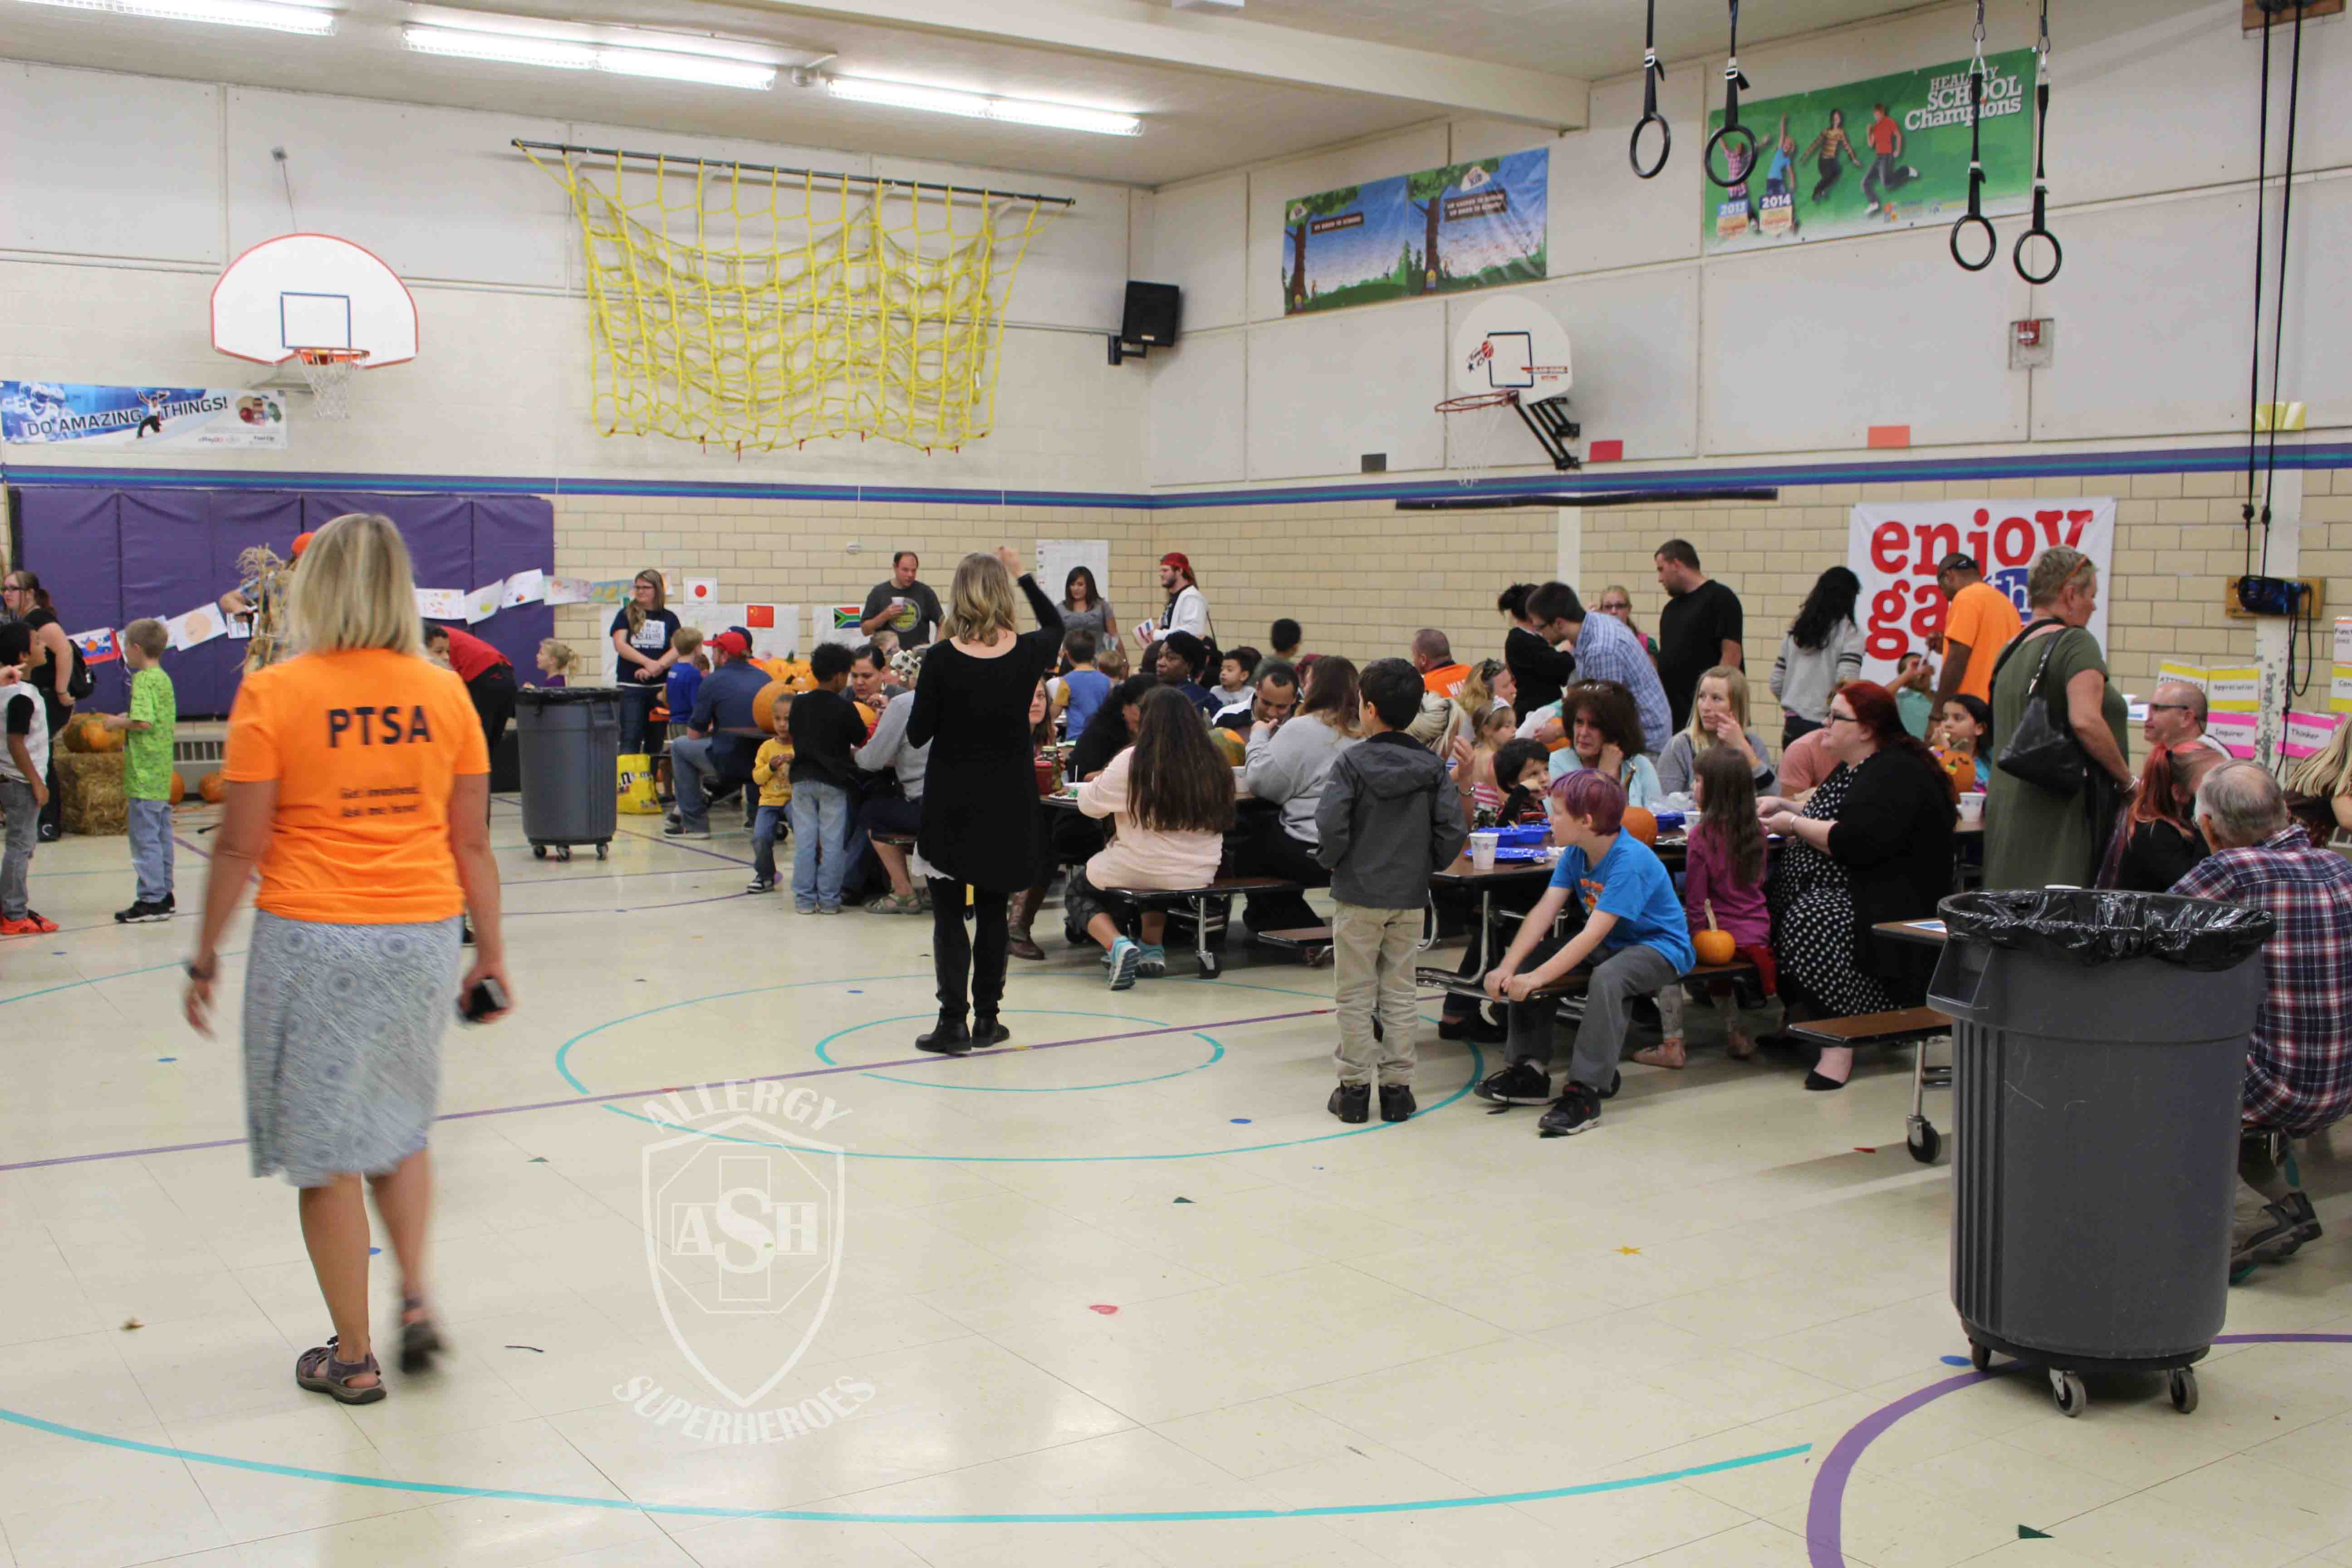 Bringing Allergy Friendliness to a school function! | Allergy Superheroes